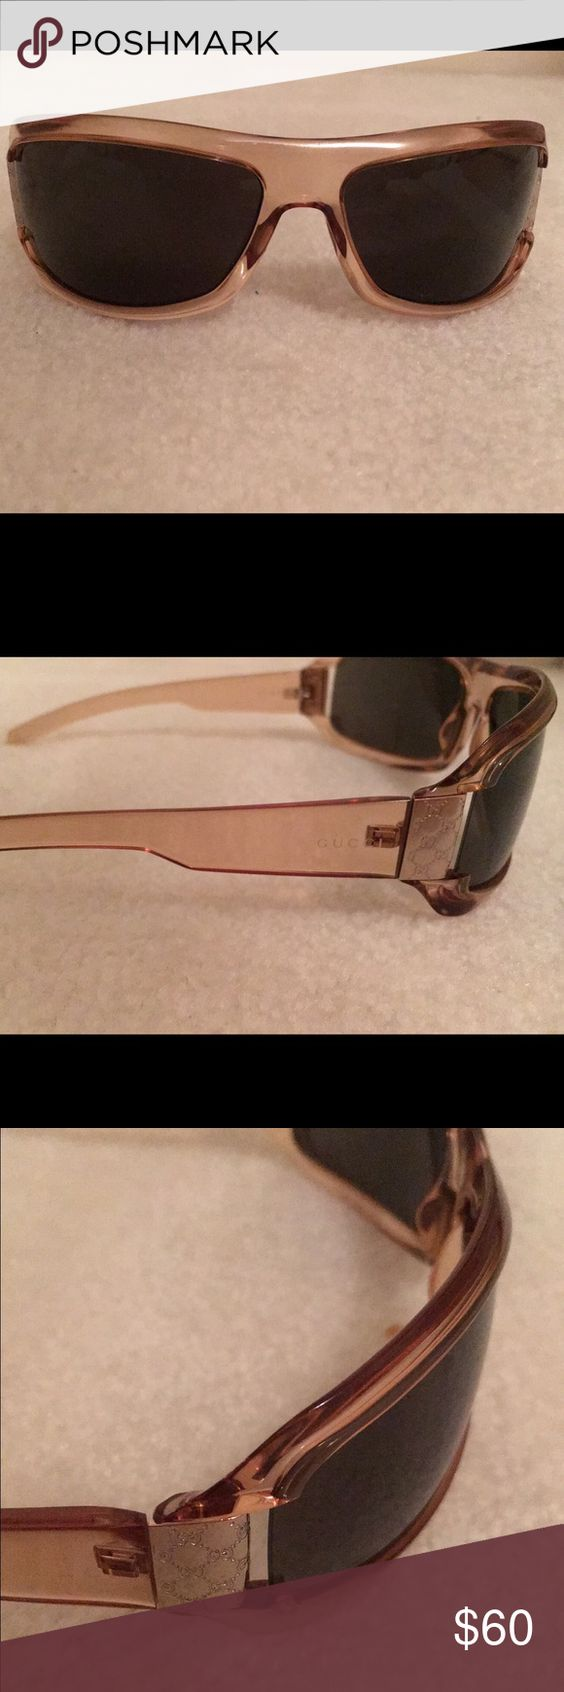 Nwot GUCCI GG Sunglasses Extremely Rare Never worn, no case, gorgeous, rare Gucci Accessories Sunglasses